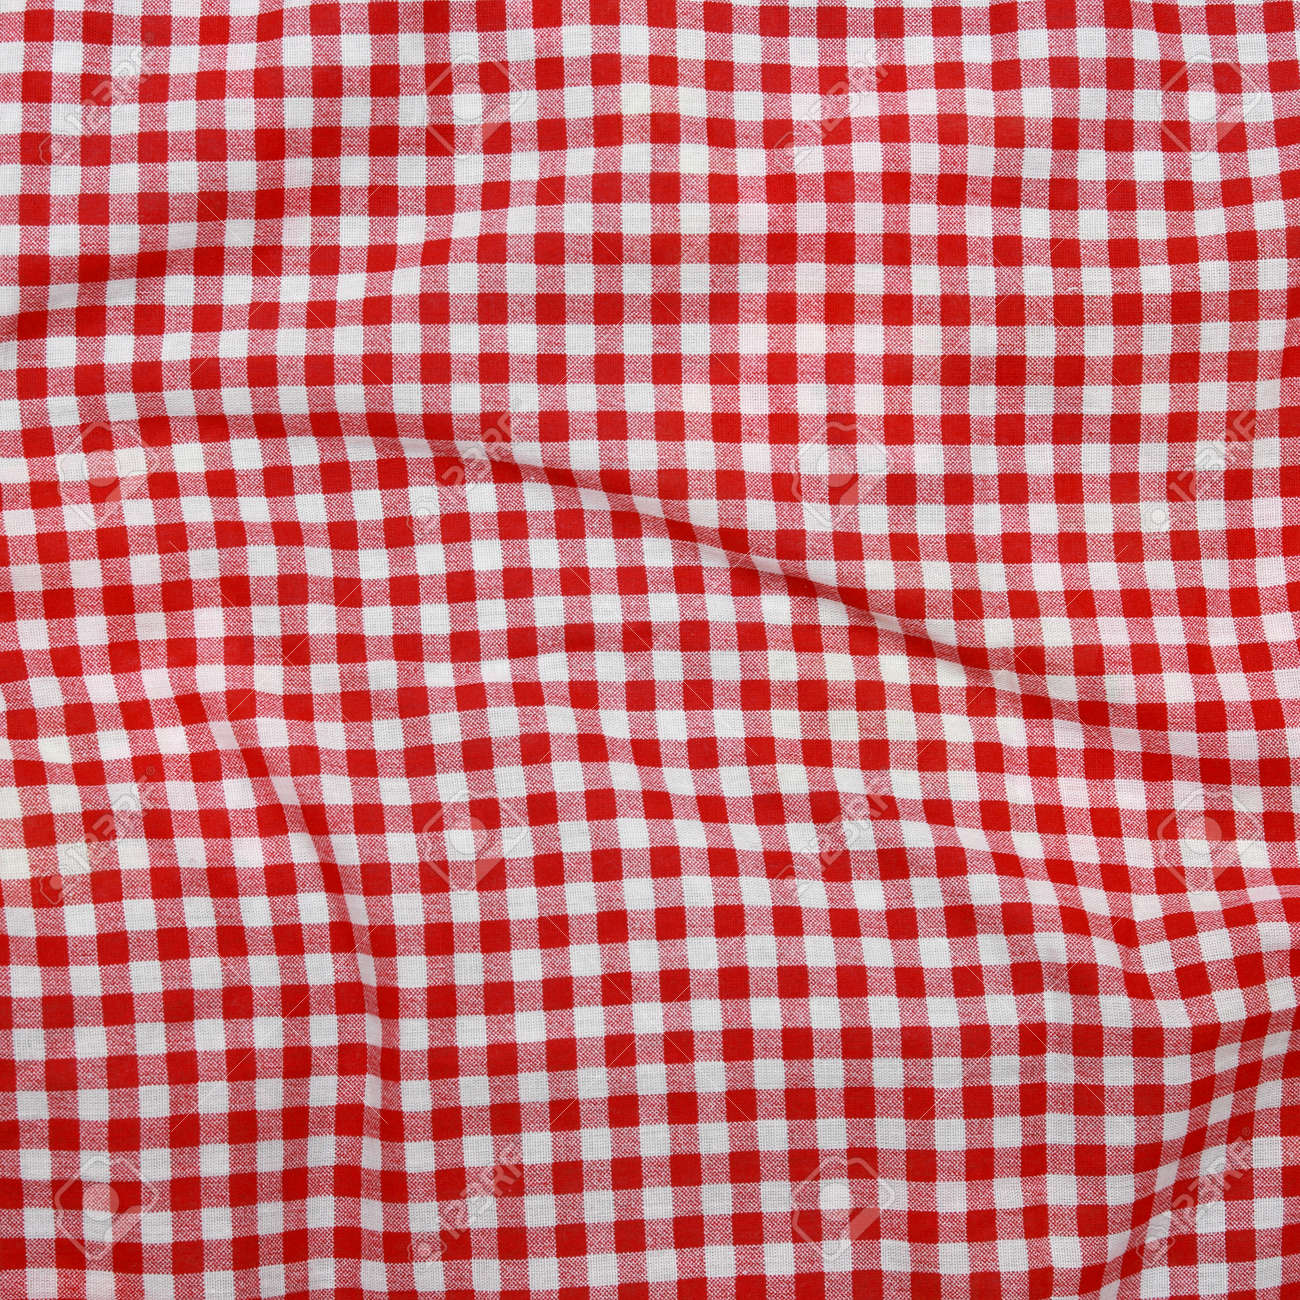 Abstract Texture Of A Red And White Checkered Picnic Blanket